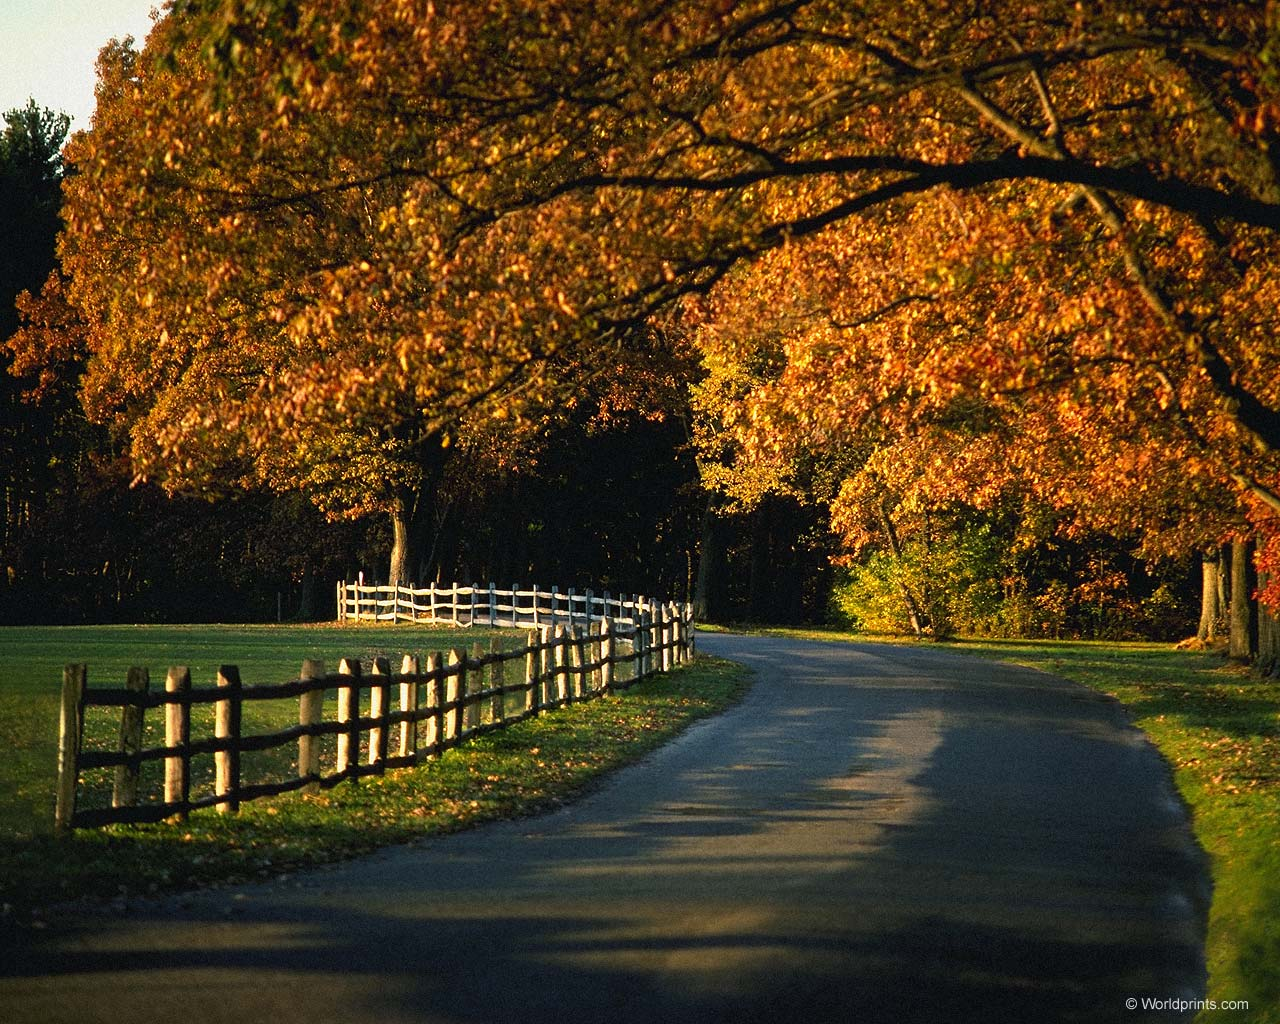 autumn wallpaper autumn wallpaper autumn wallpaper autumn wallpaper 1280x1024